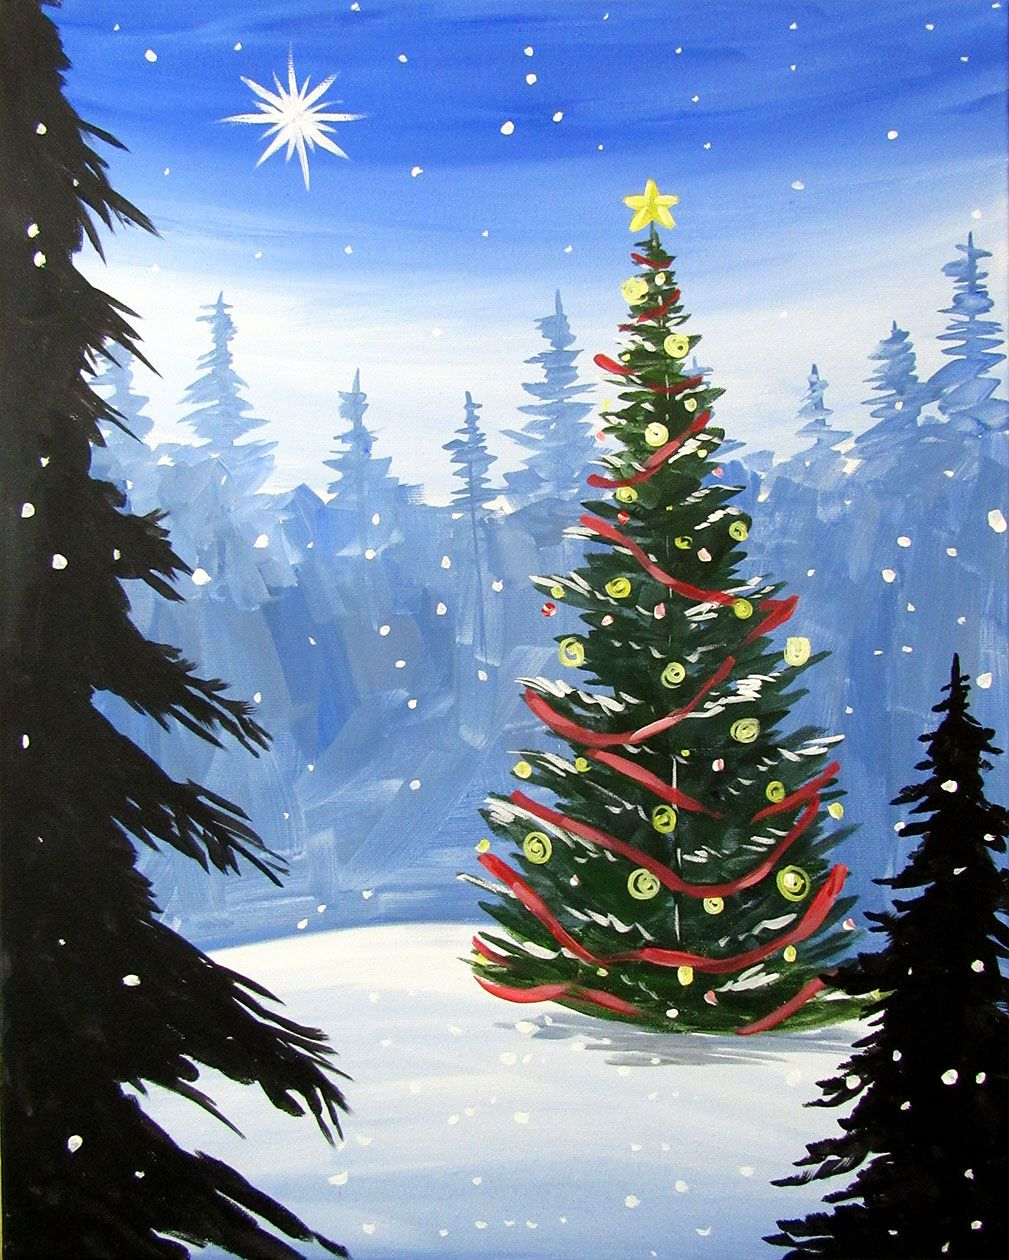 Where To Buy A Christmas Tree Near Me: Paint Nite. Drink. Paint. Party! We Host Painting Events